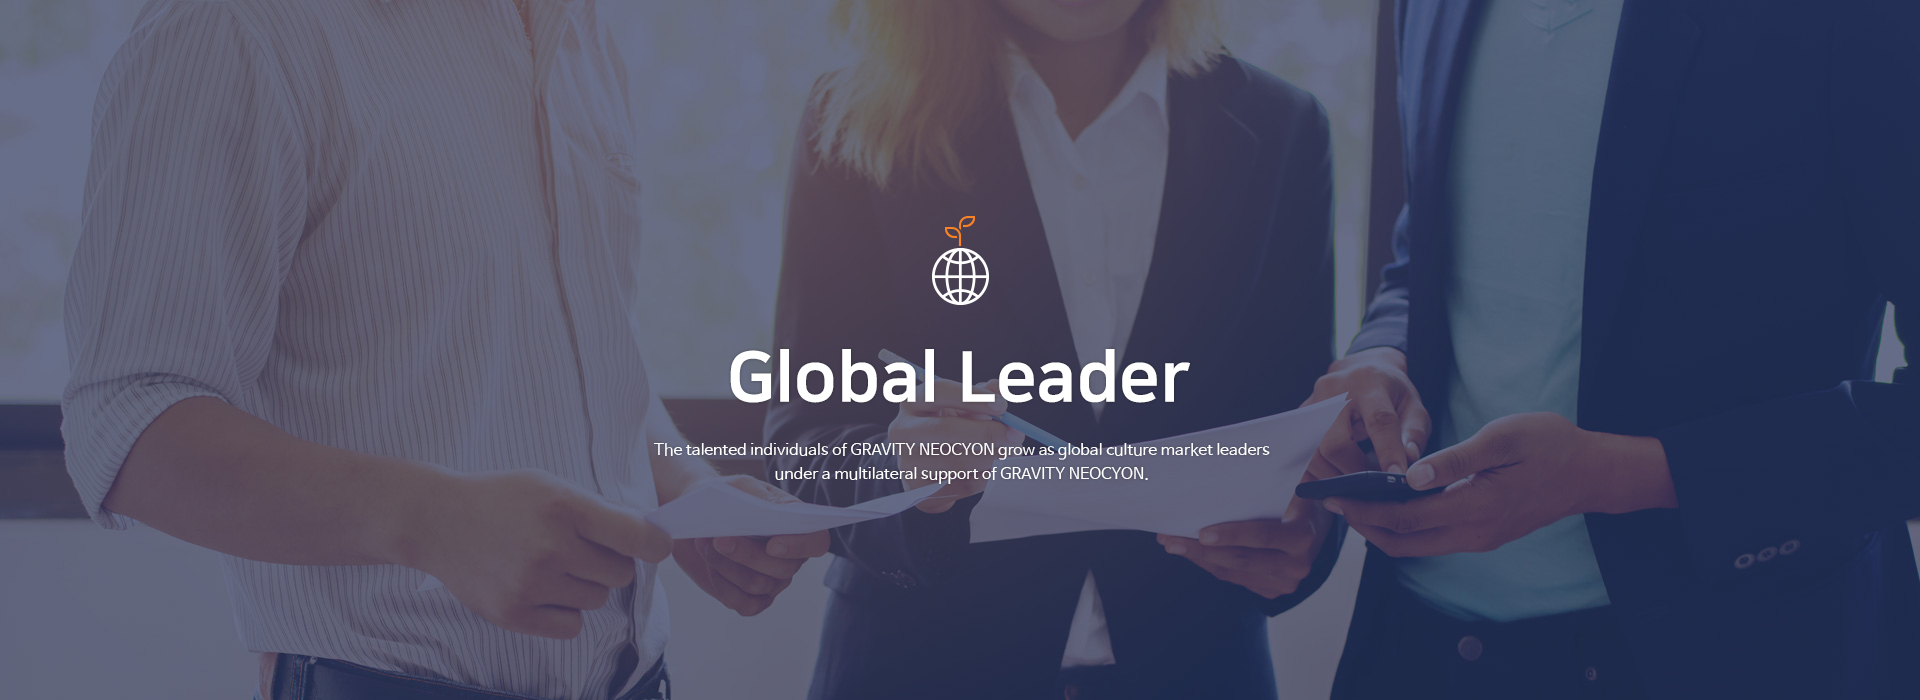 The talented individuals of GRAVITY NEOCYON grow as global culture market leaders under a multilateral support of NEOCYON.